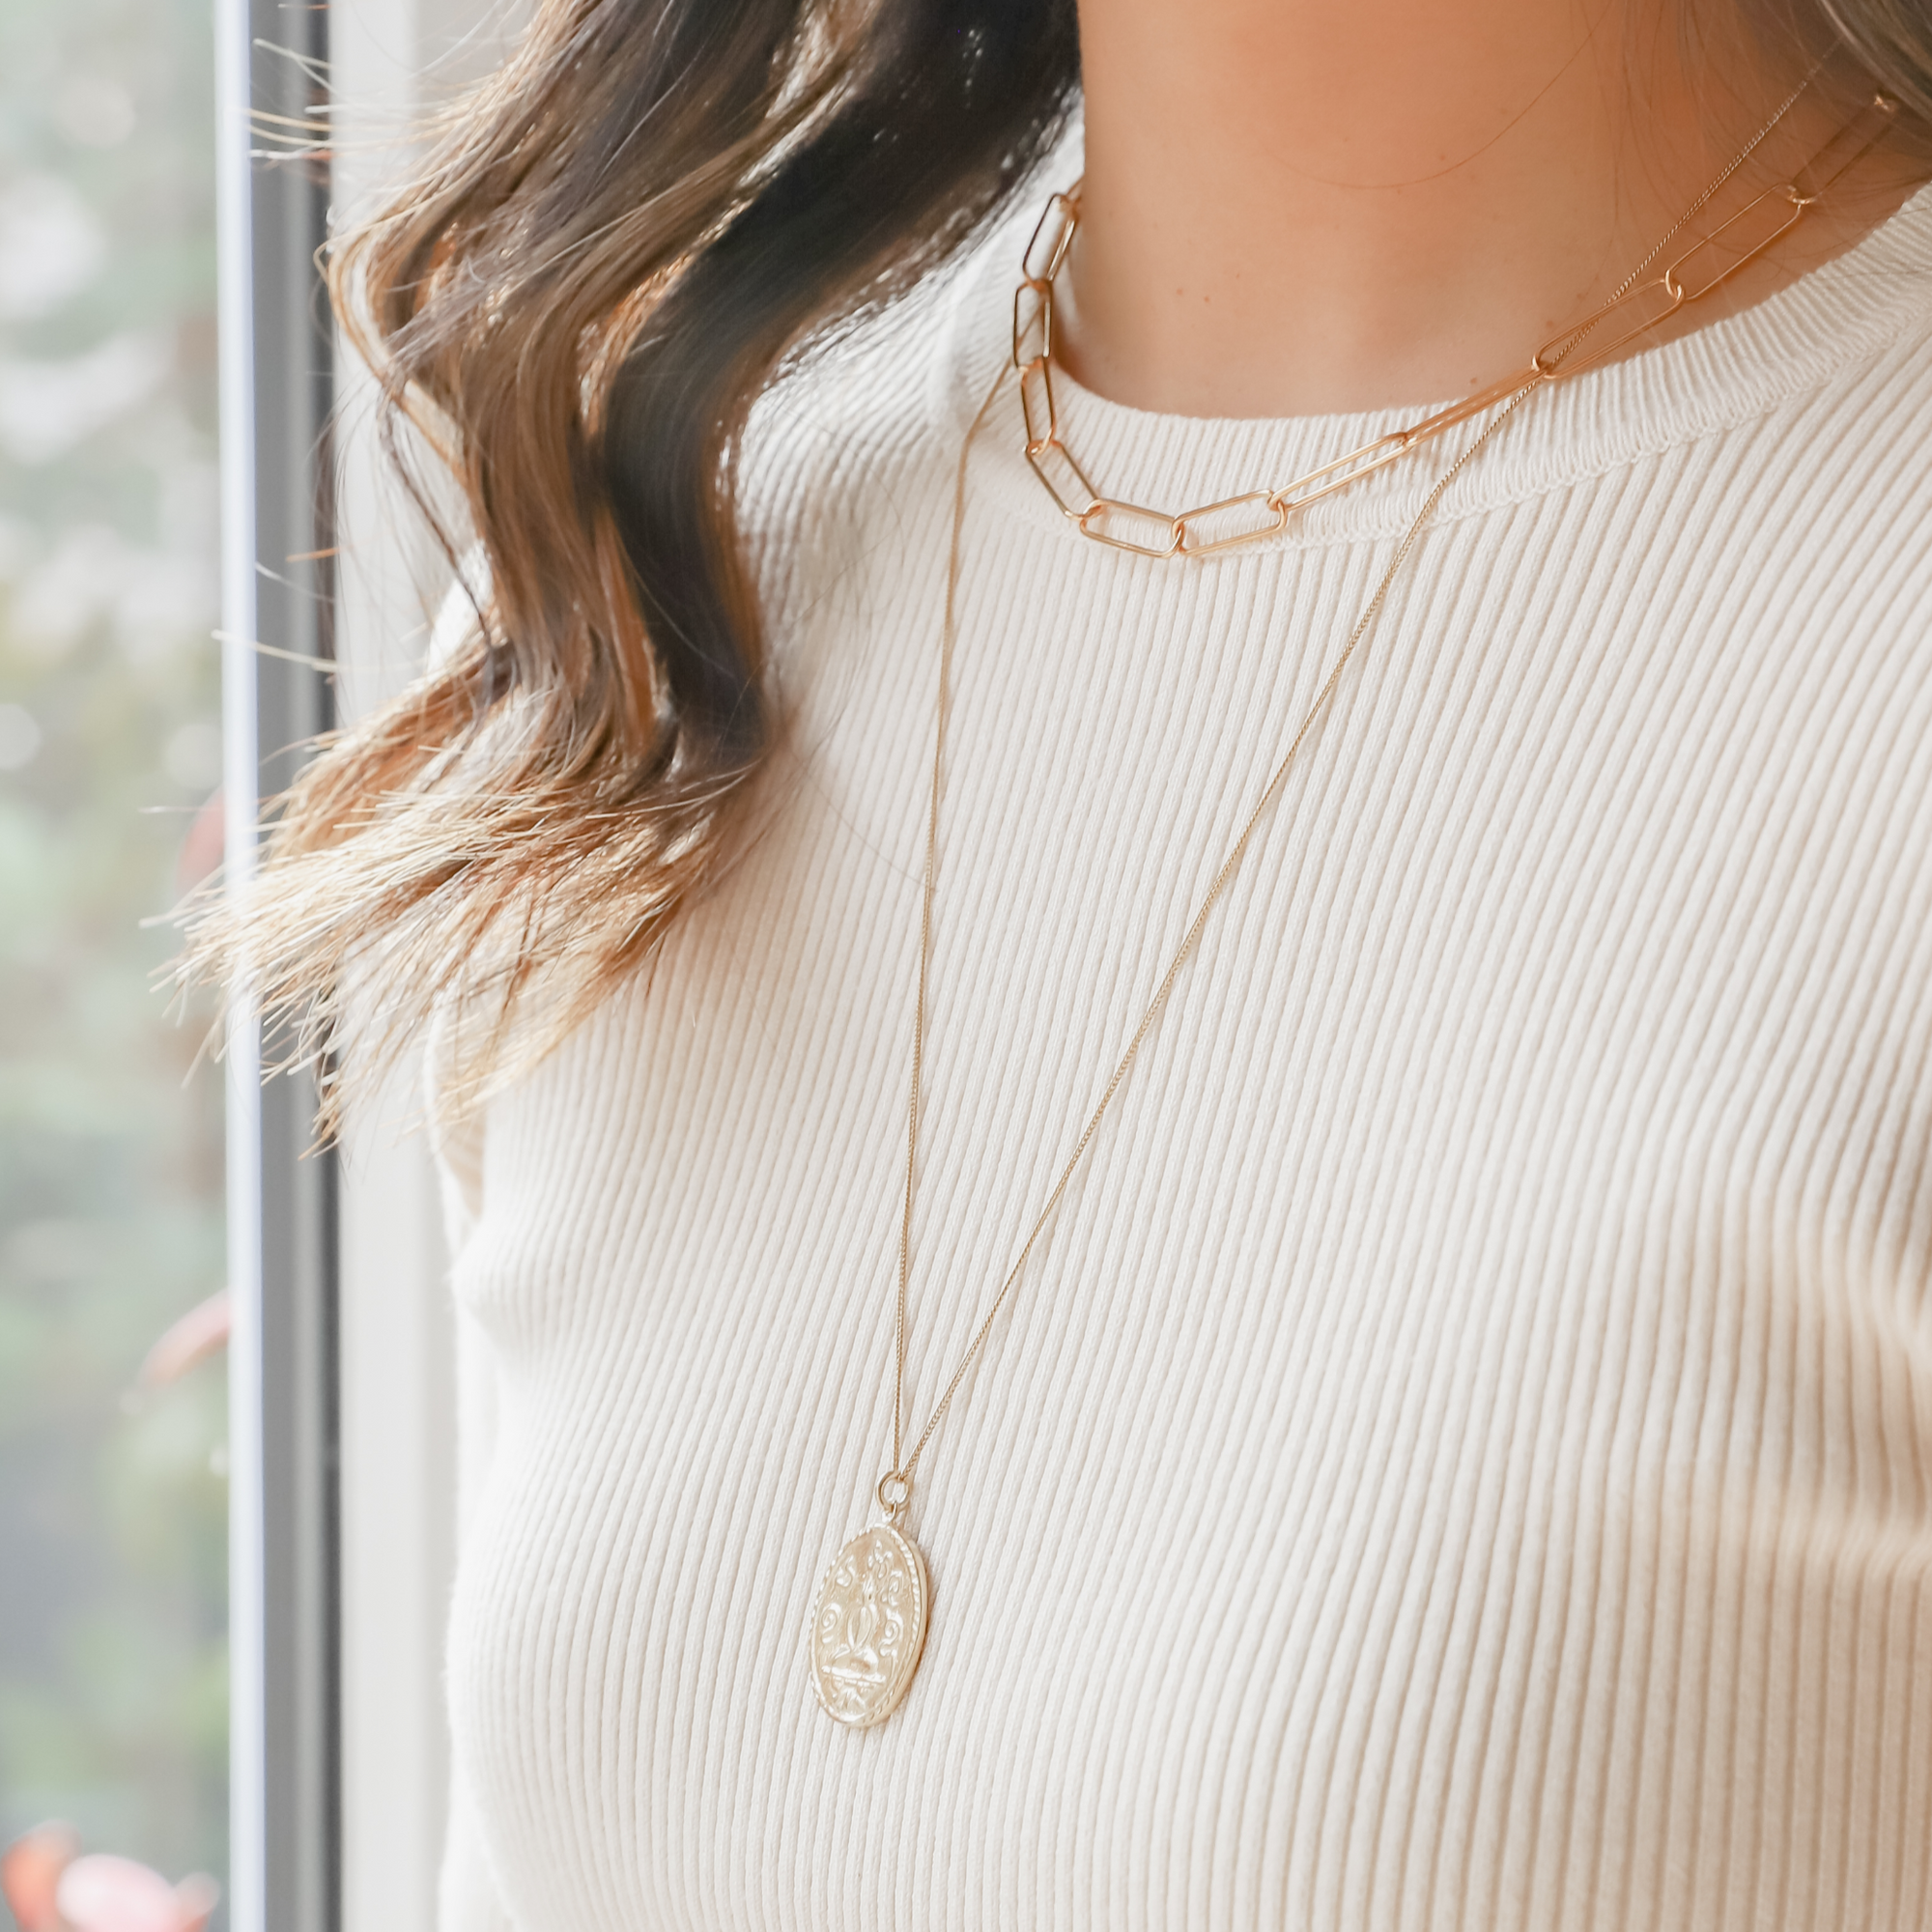 "Simple, elegant, handmade fine paper clip chain necklace in 22K gold vermeil is 14.5"" with 2"" extender; features lobster clasp and hand-pressed Jai Style charm. Makes a bold style statement on its own and is perfect for layering."